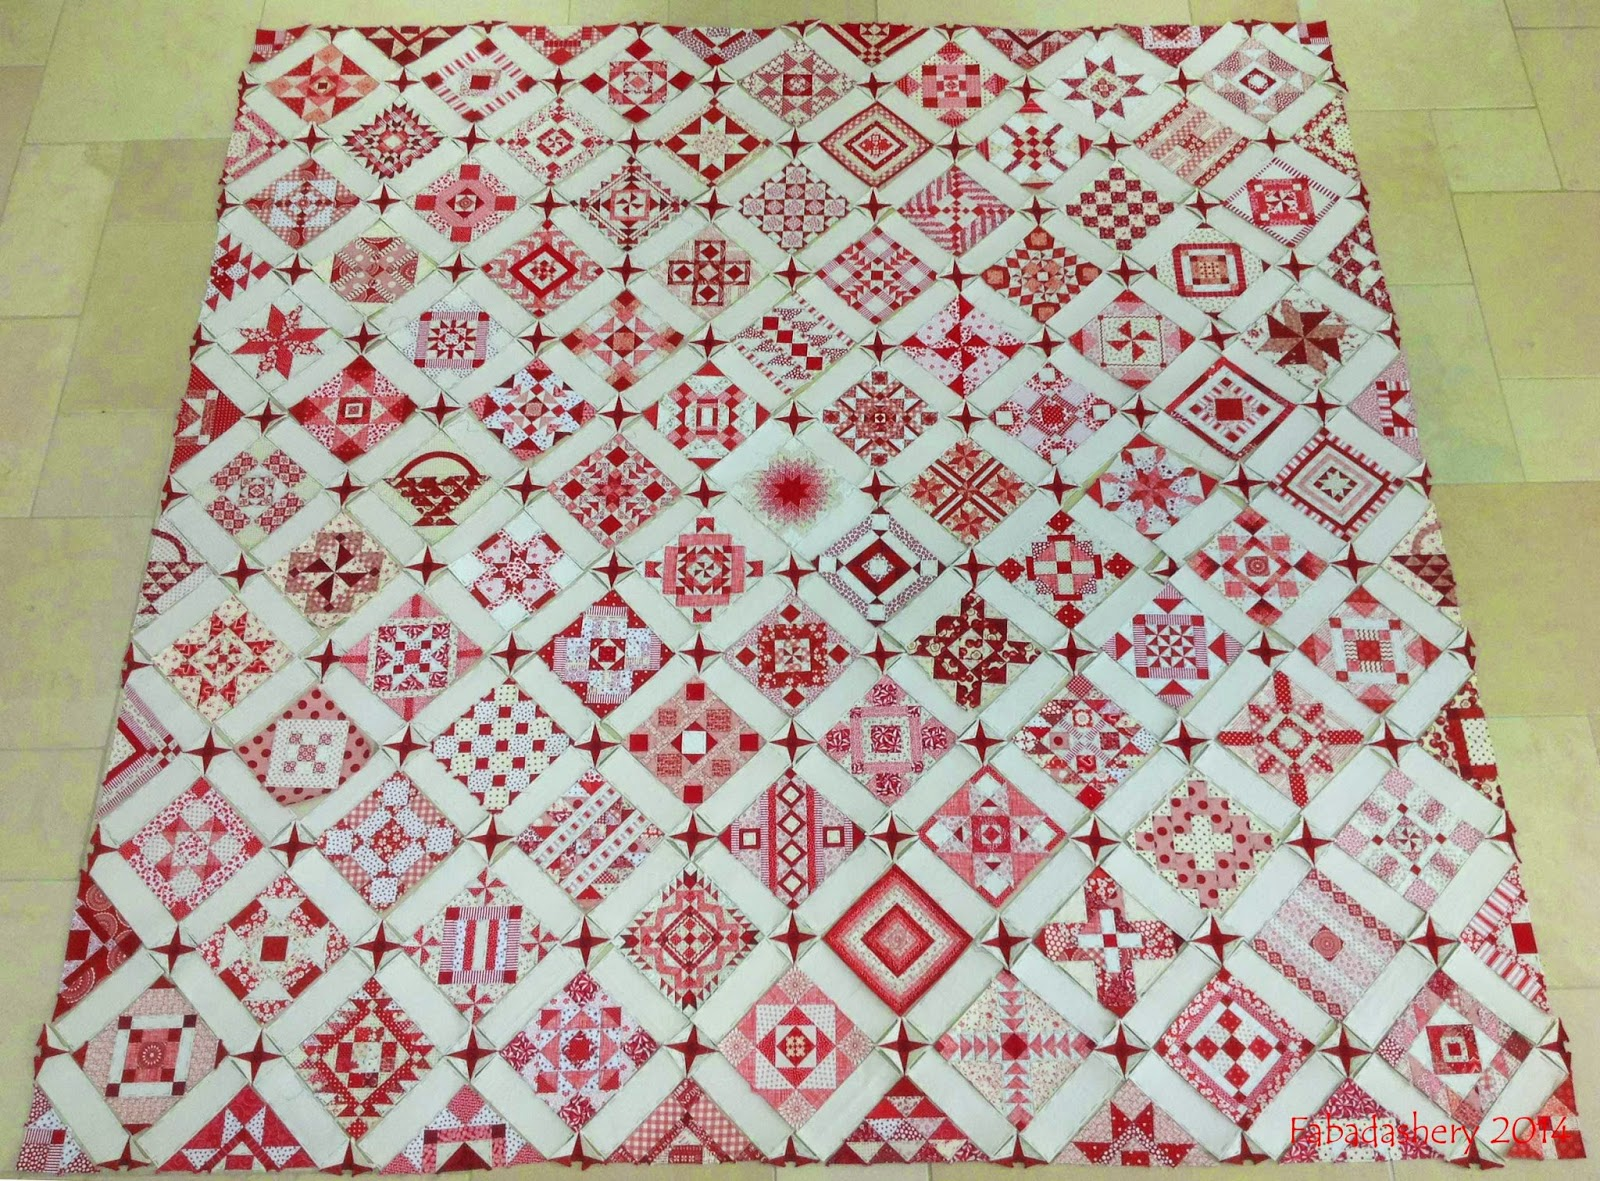 Nearly Insane Quilt - Red and White